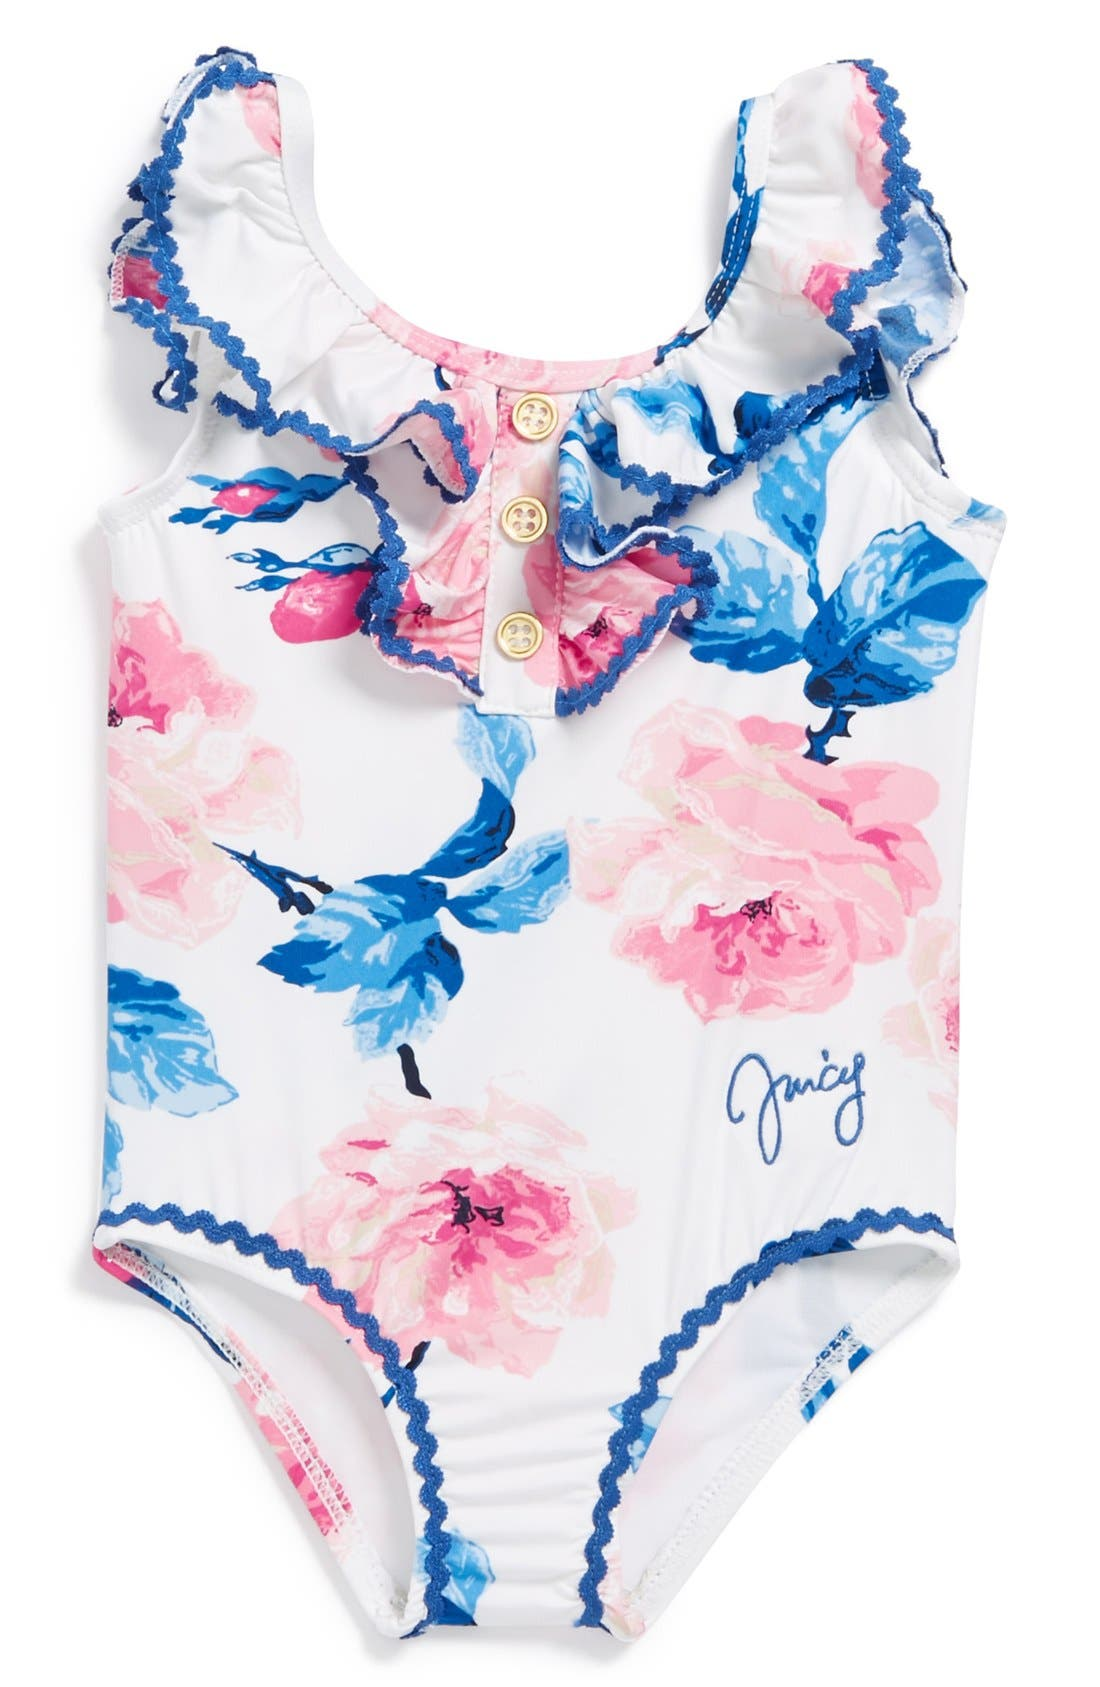 Alternate Image 1 Selected - Juicy Couture 'Rose' One-Piece Swimsuit (Baby Girls)